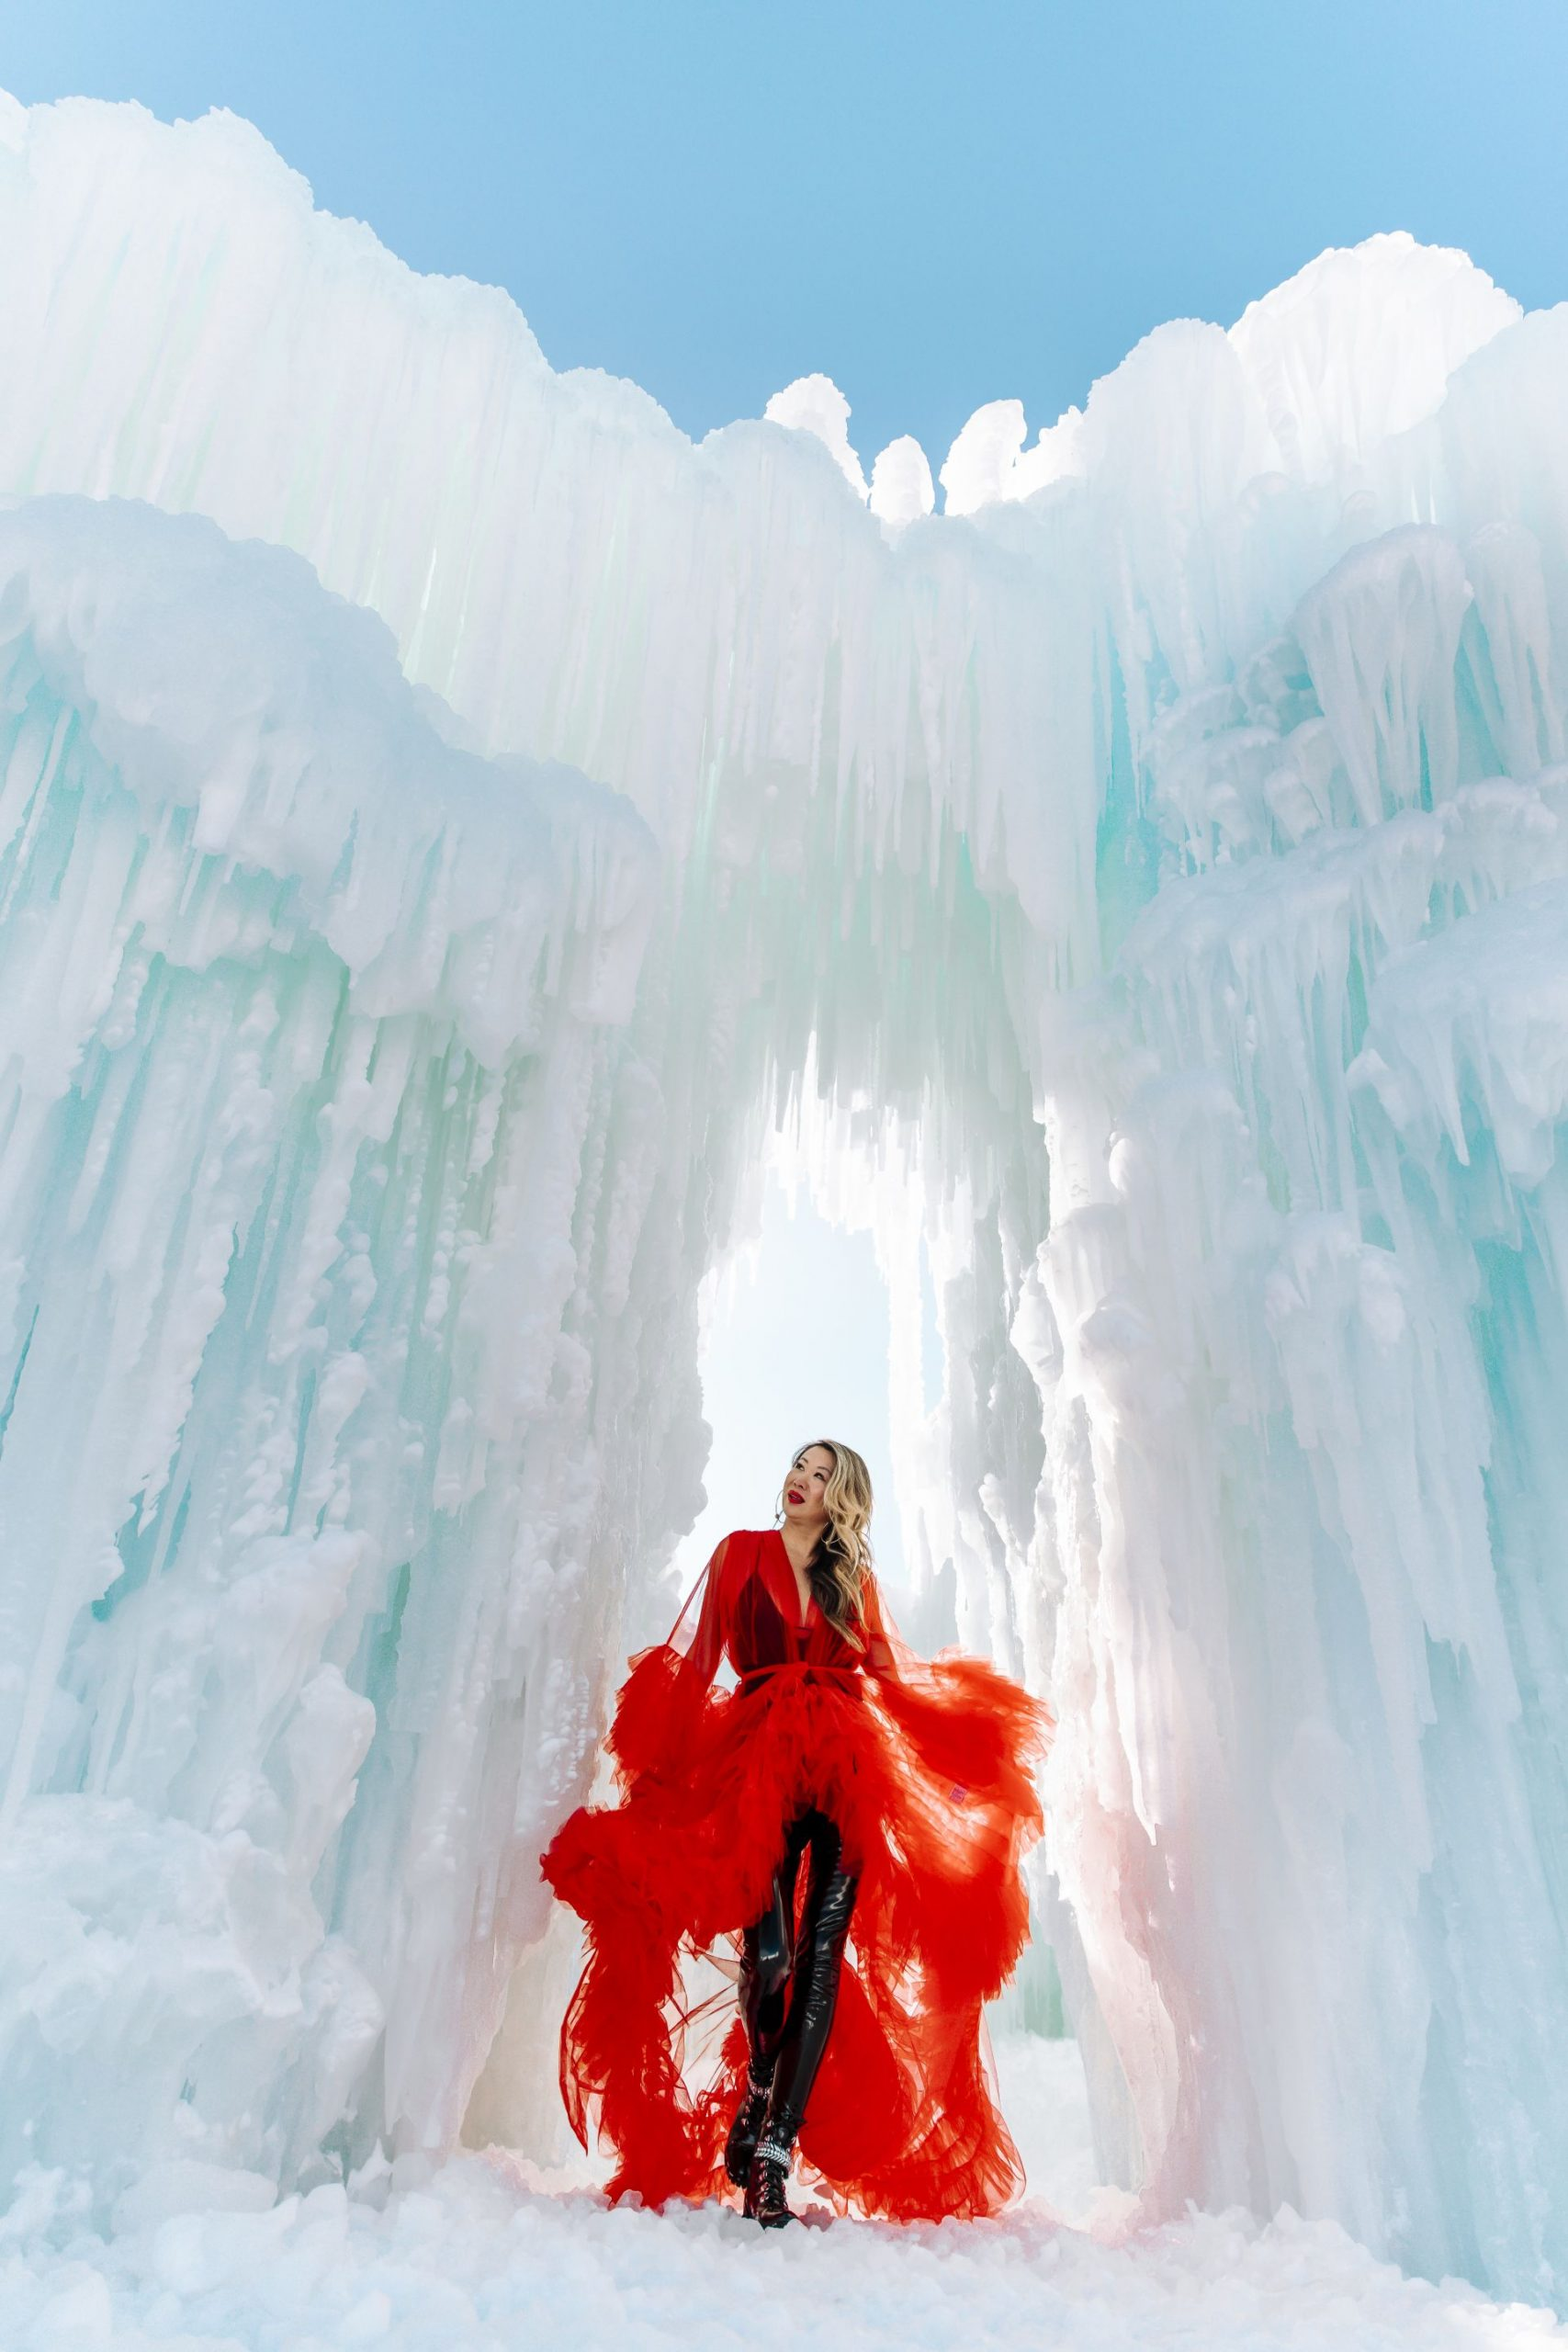 Ice Castles, Lake Geneva, Wisconsin Ice Castles, Ice castles photography ideas, creative photography ideas, Jennifer Worman, Red Tulle Robe, Ice Castles Photo Inspiration, What to do in Chicago Winter, Romantic Ideas for Dates, Romantic stories, Dating Advice